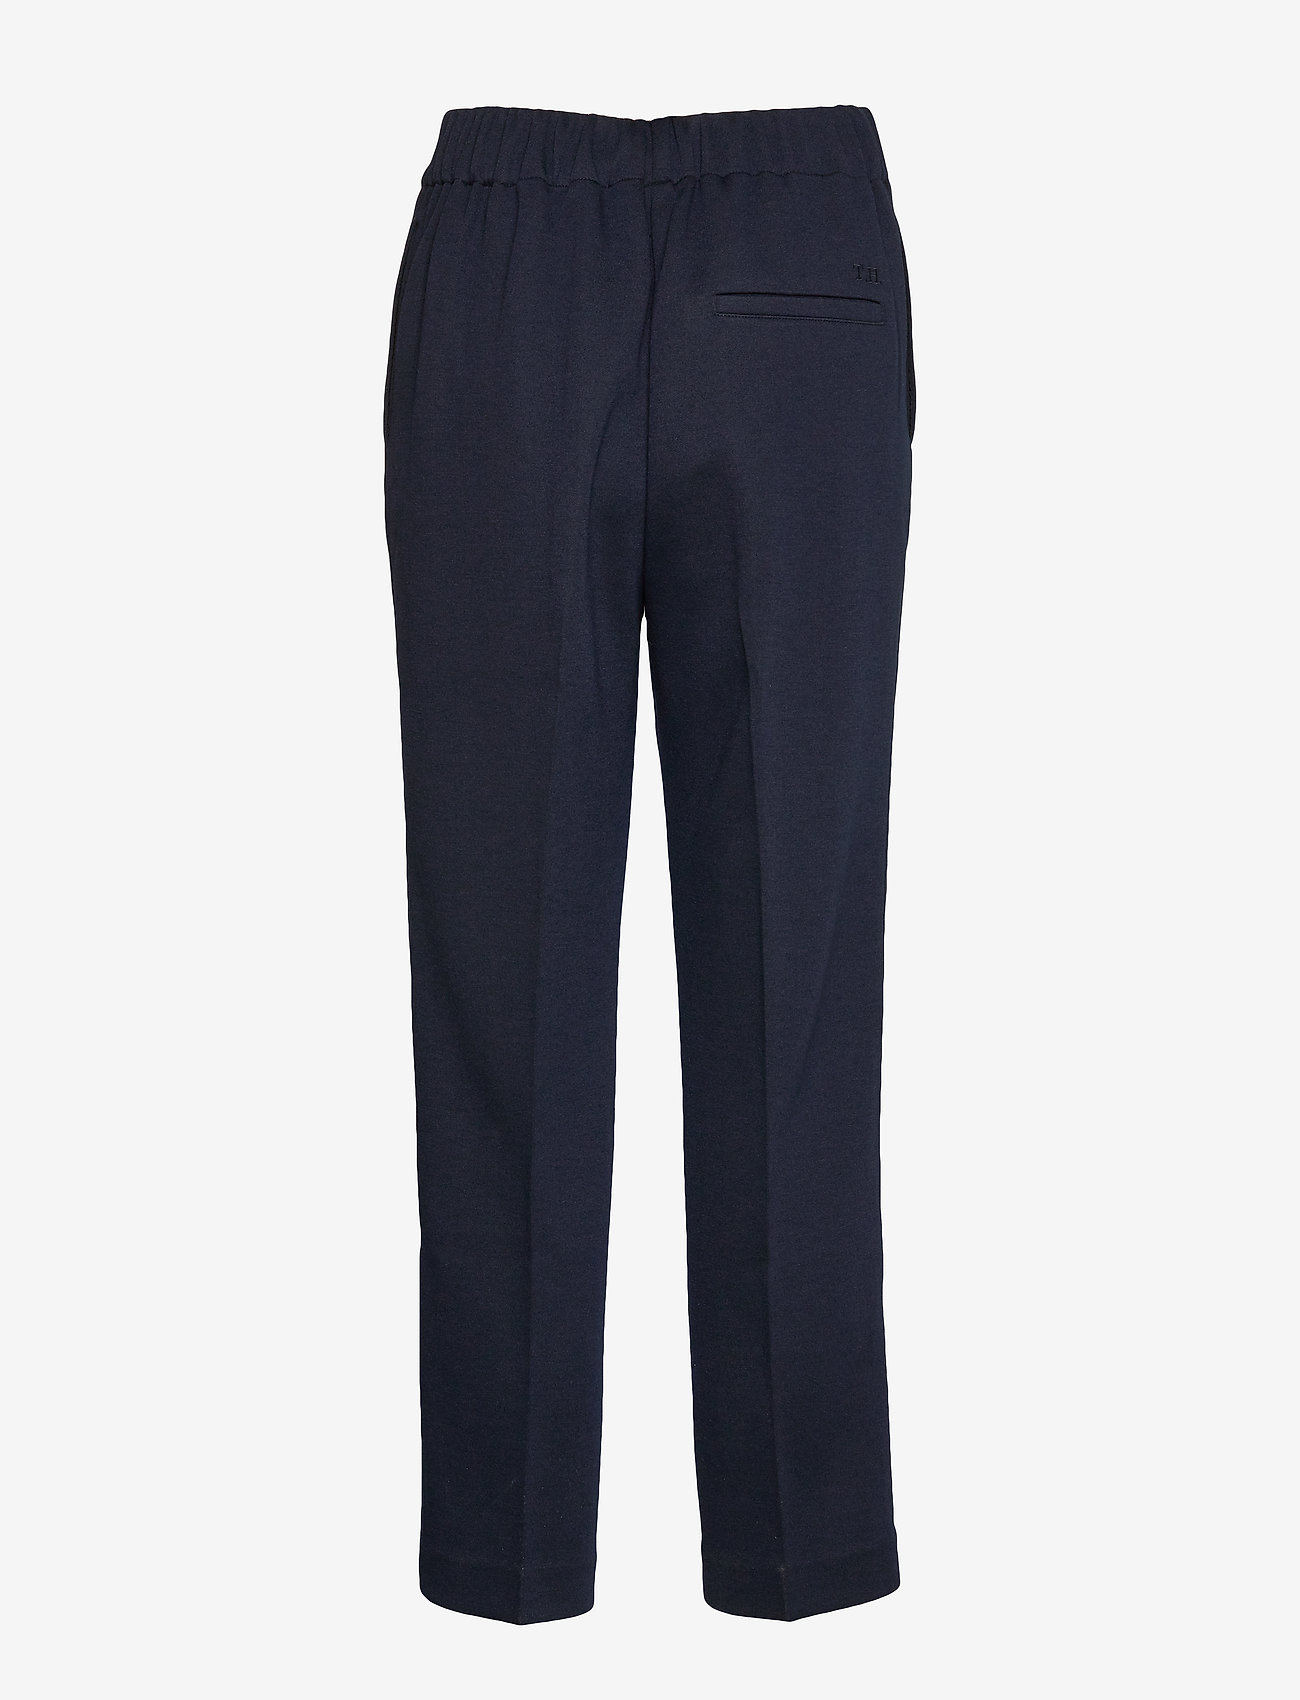 Tommy Hilfiger - TH ESSENTIAL JERSEY PANT - straight leg trousers - desert sky - 1